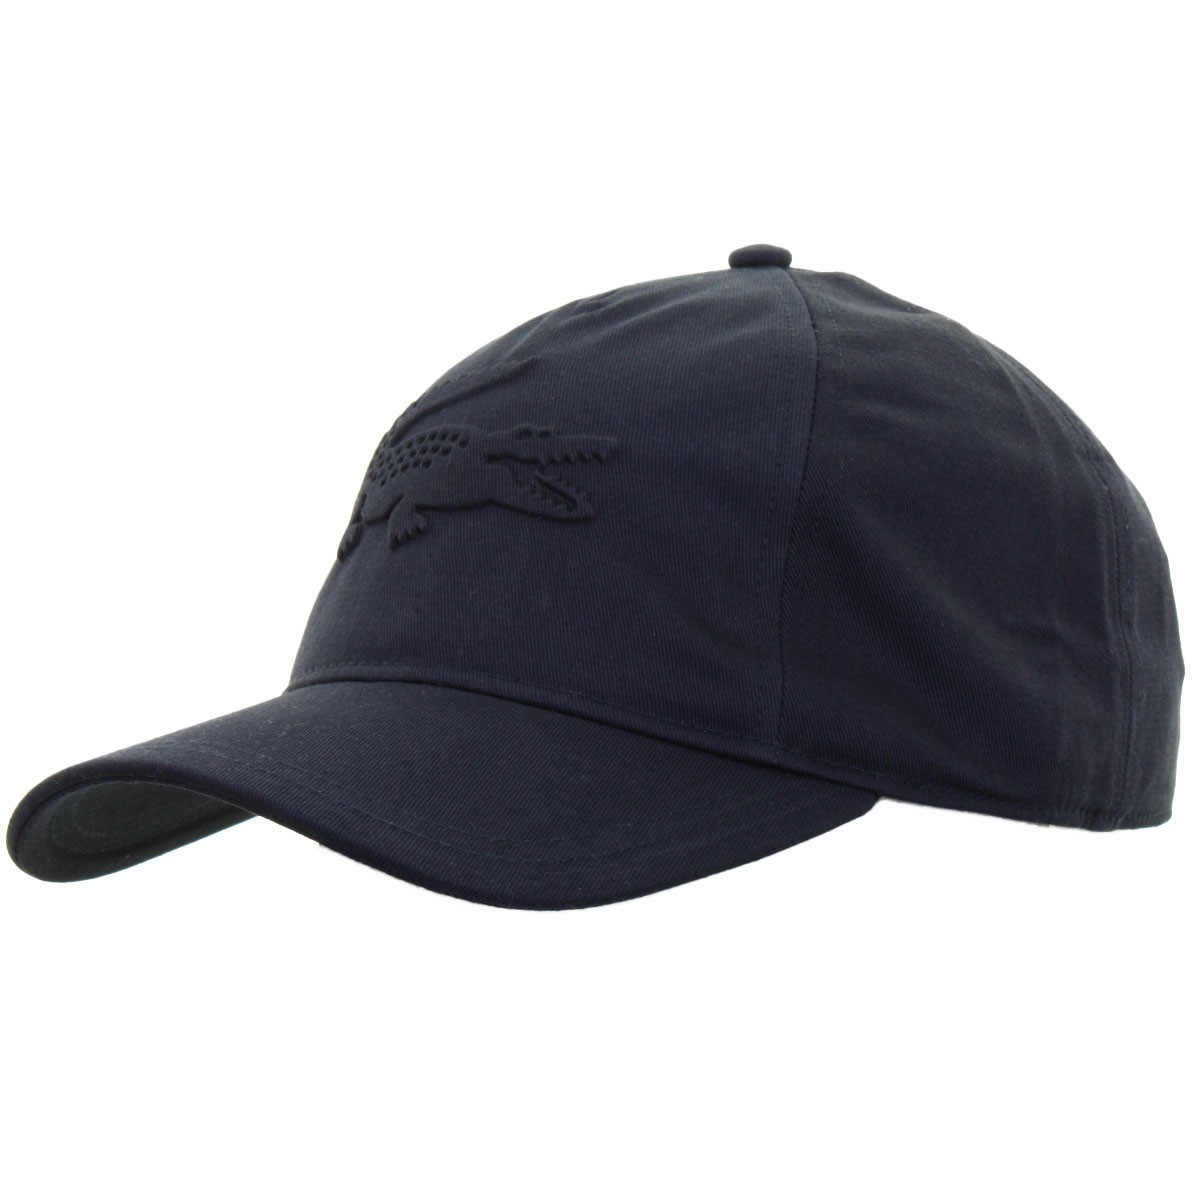 c2f6083fa7fc9 Lacoste Mens Gabardine Embossed Croc Adjustable Cap - Golf Headwear ...